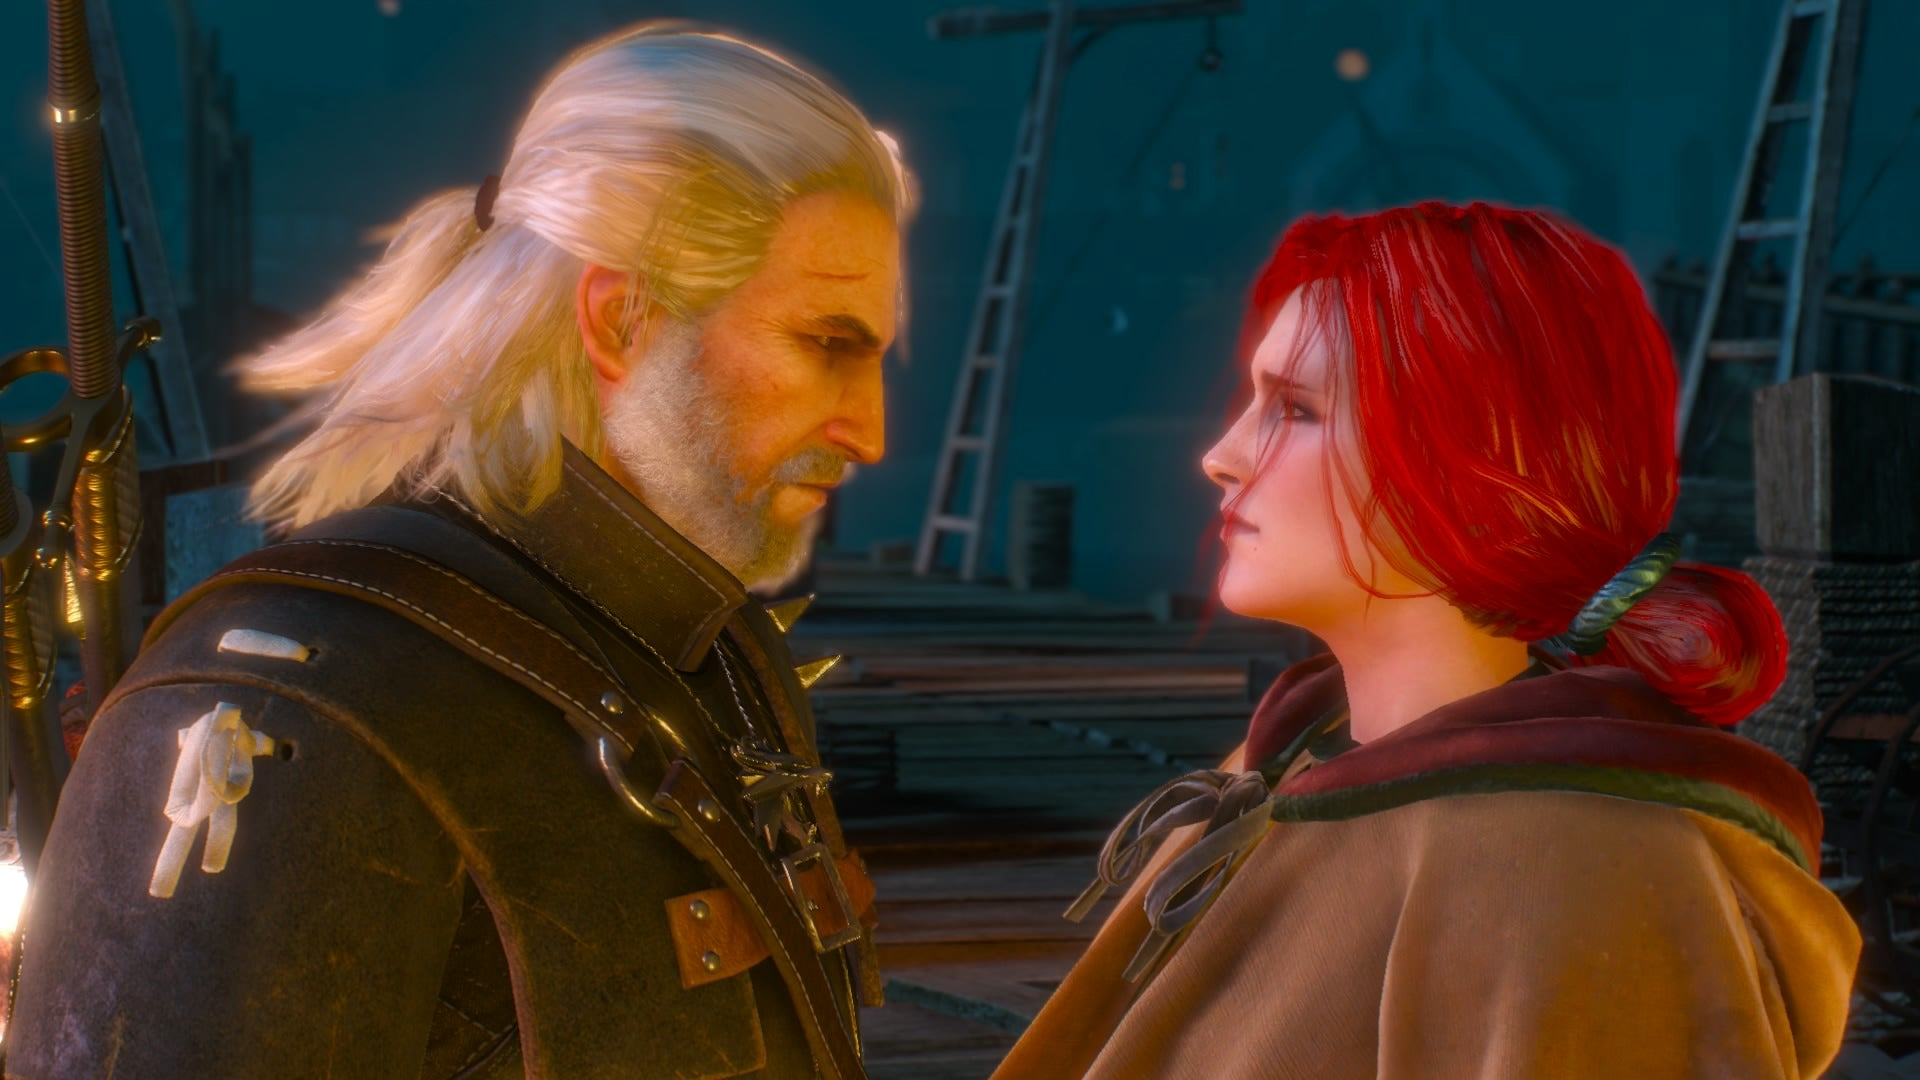 Upcoming Witcher 3 Patch Will Flesh Out The Game's Romances